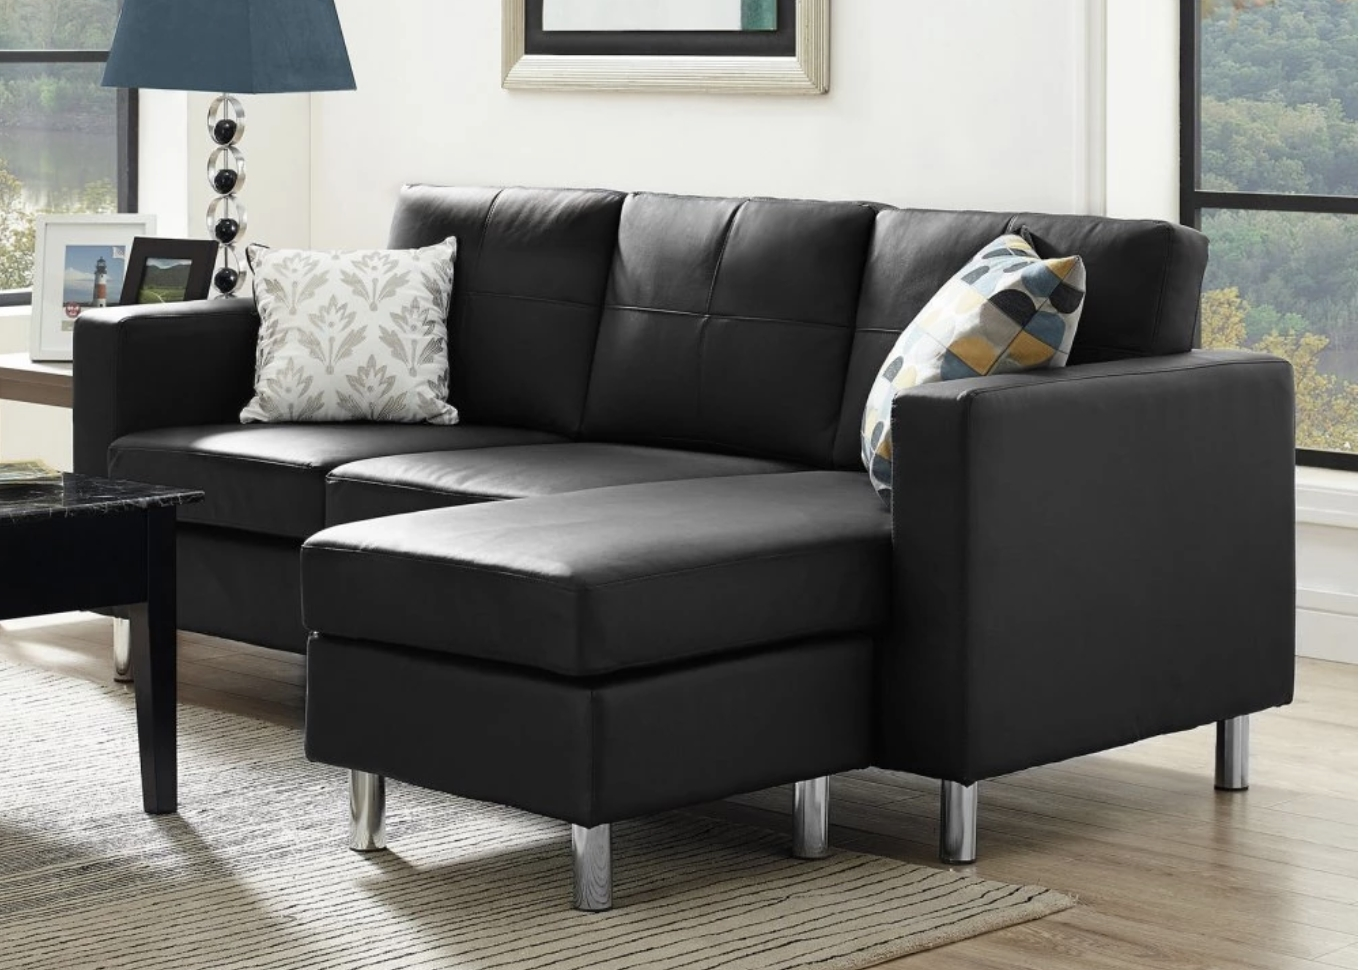 75 Modern Sectional Sofas For Small Spaces (2018) Intended For Latest Sectional Sofas In Small Spaces (View 7 of 15)